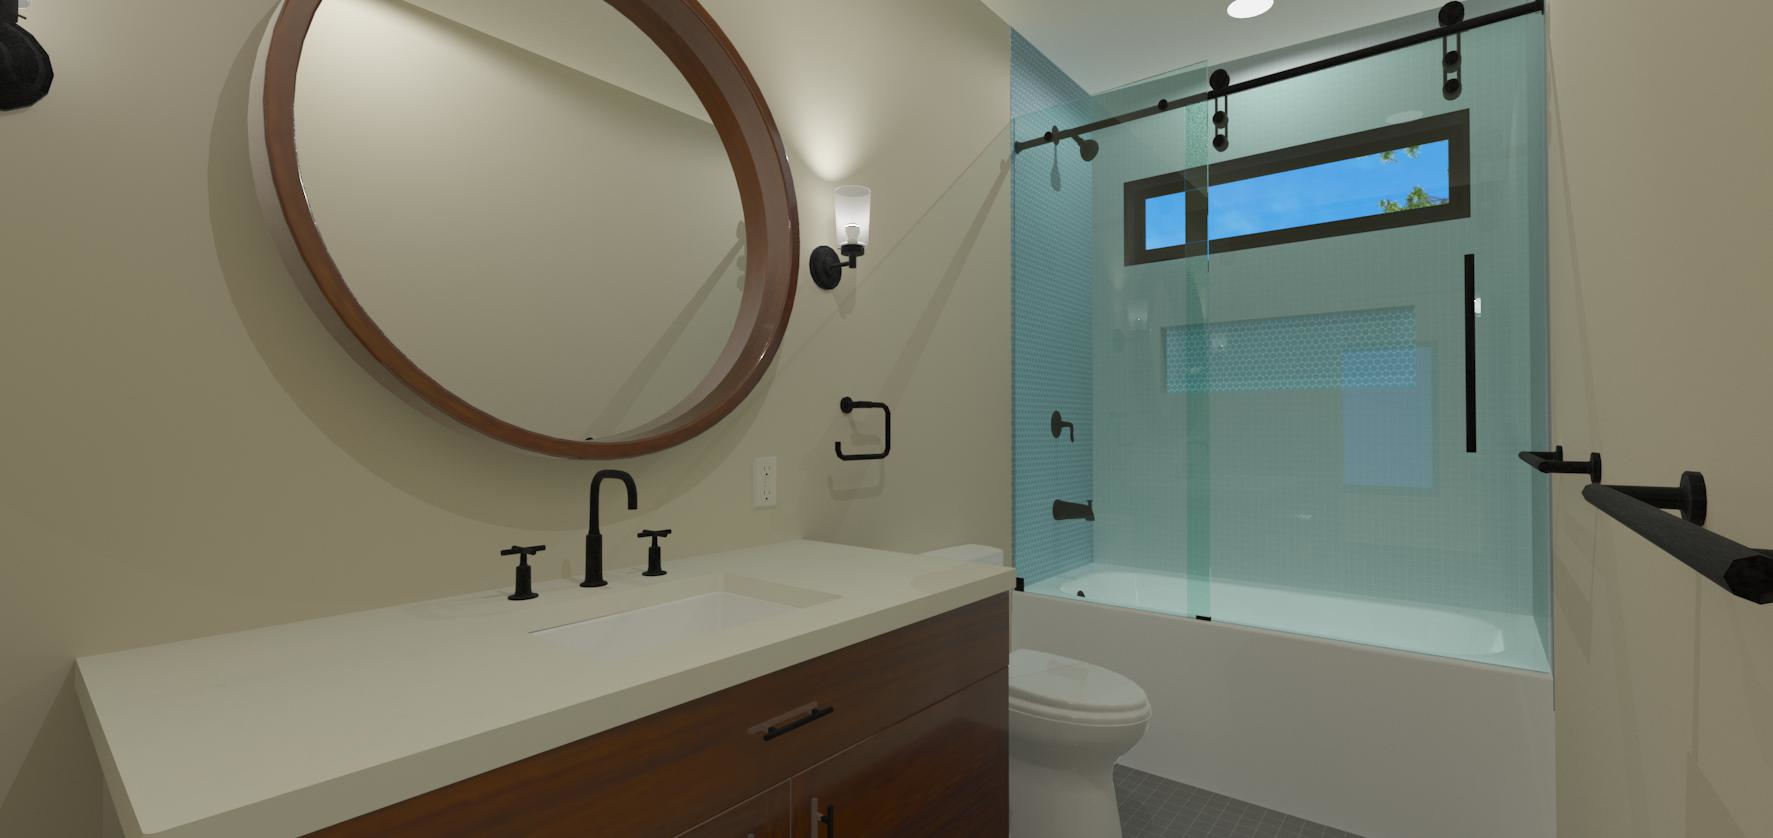 phoenix az bathroom remodeling design